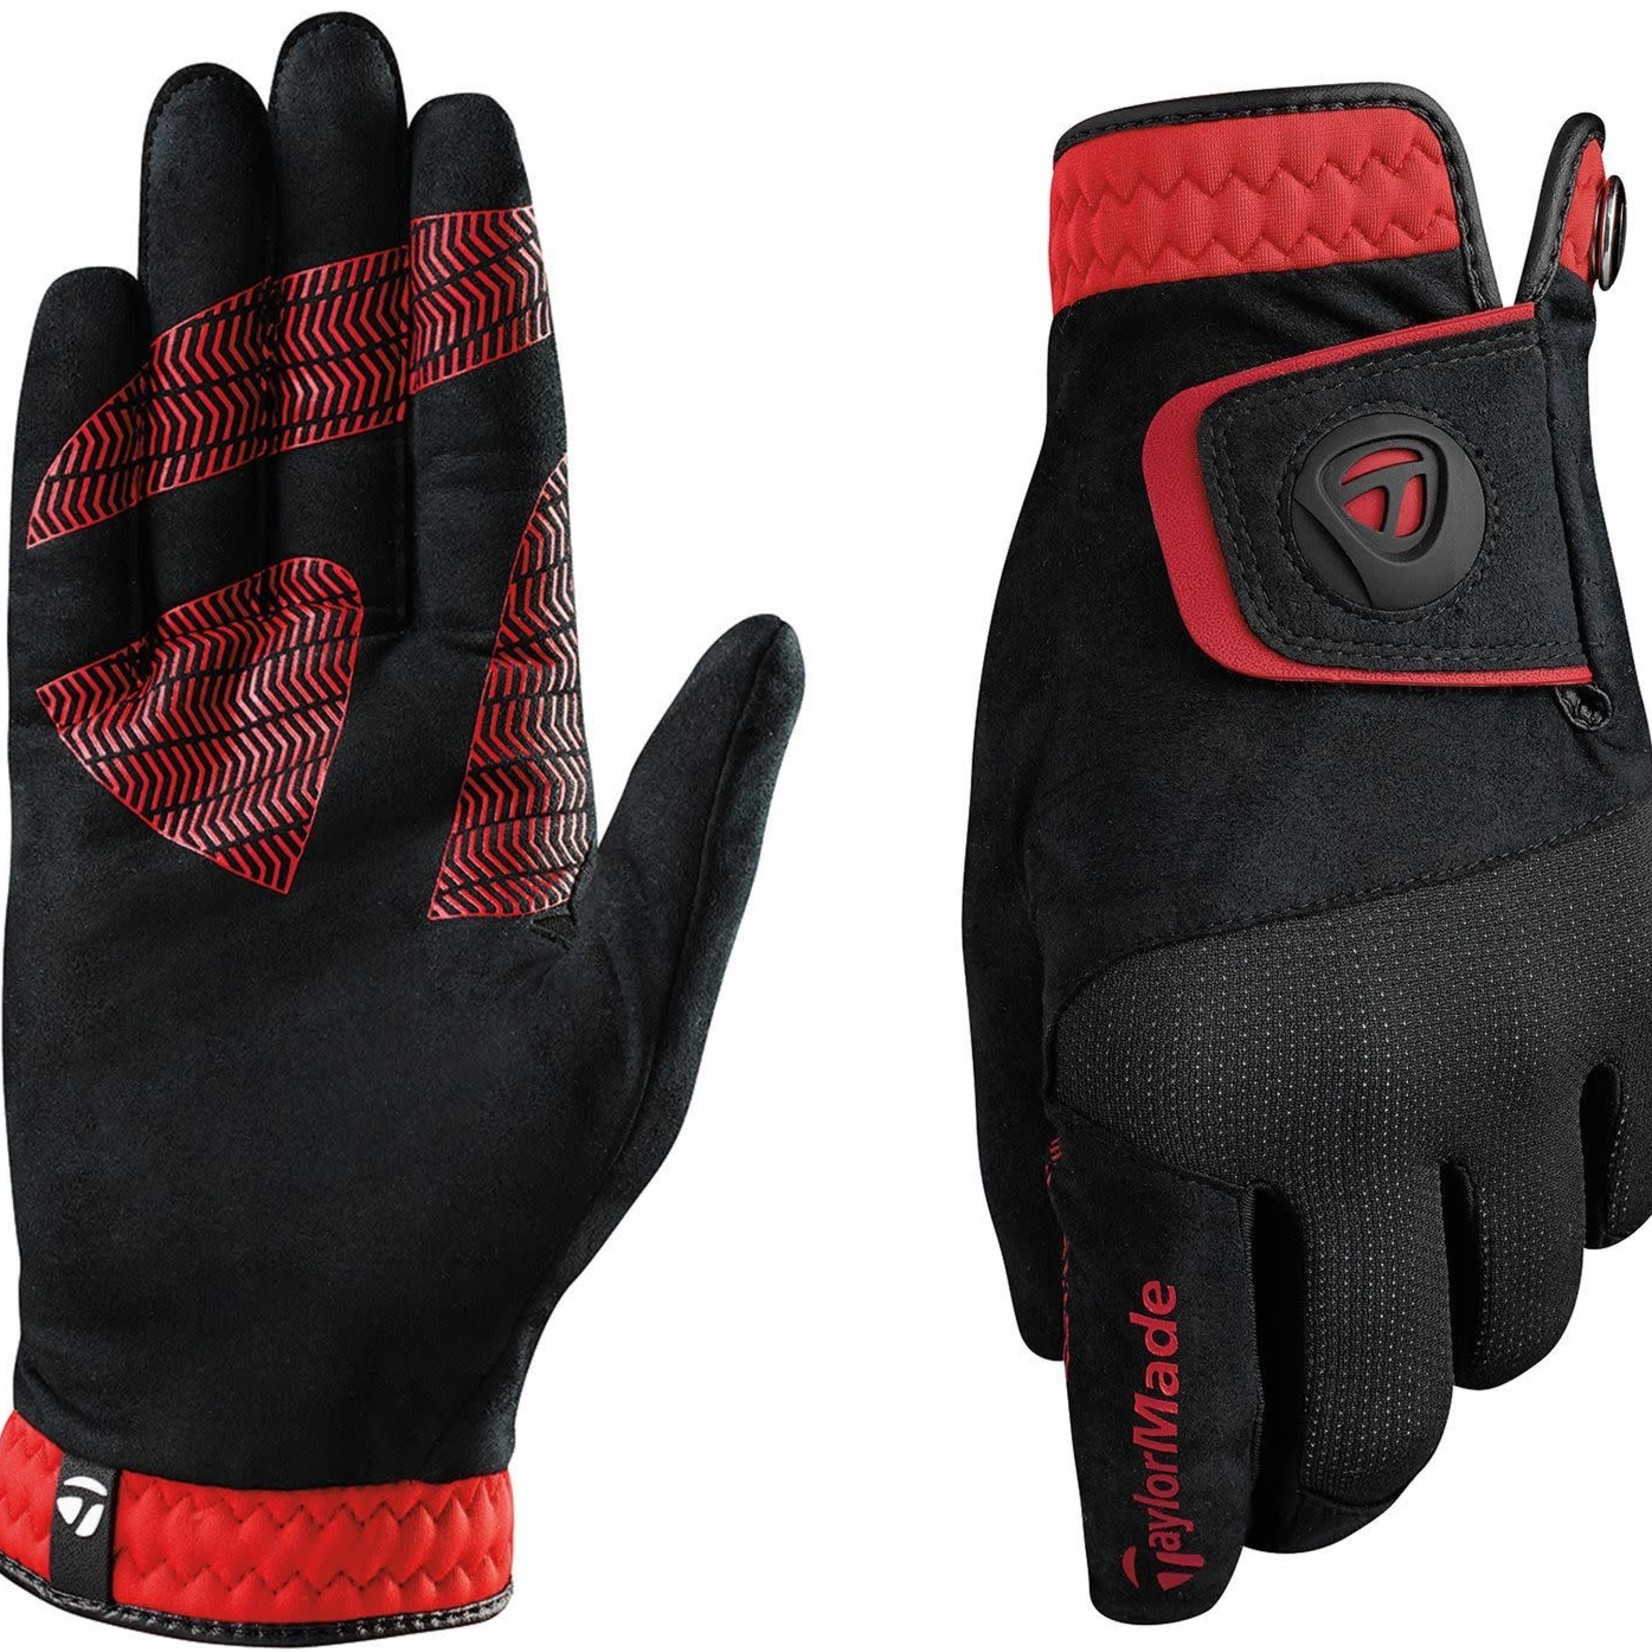 TAYLORMADE TAYLORMADE RAIN CONTROL GLOVES S